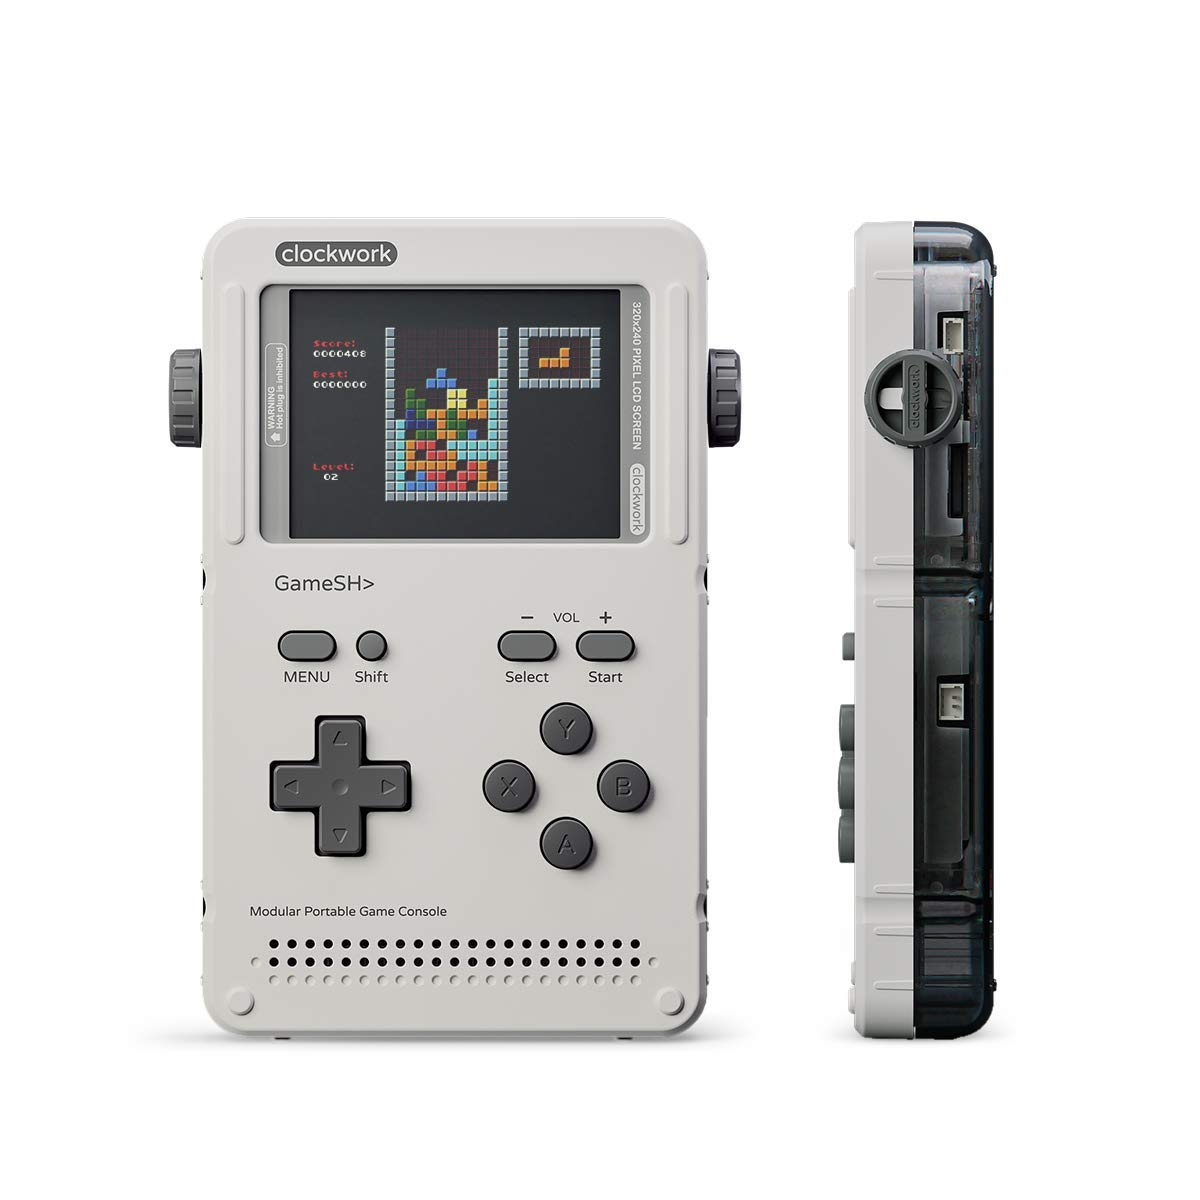 Clockwork GameShell Portable Game Console Sideview